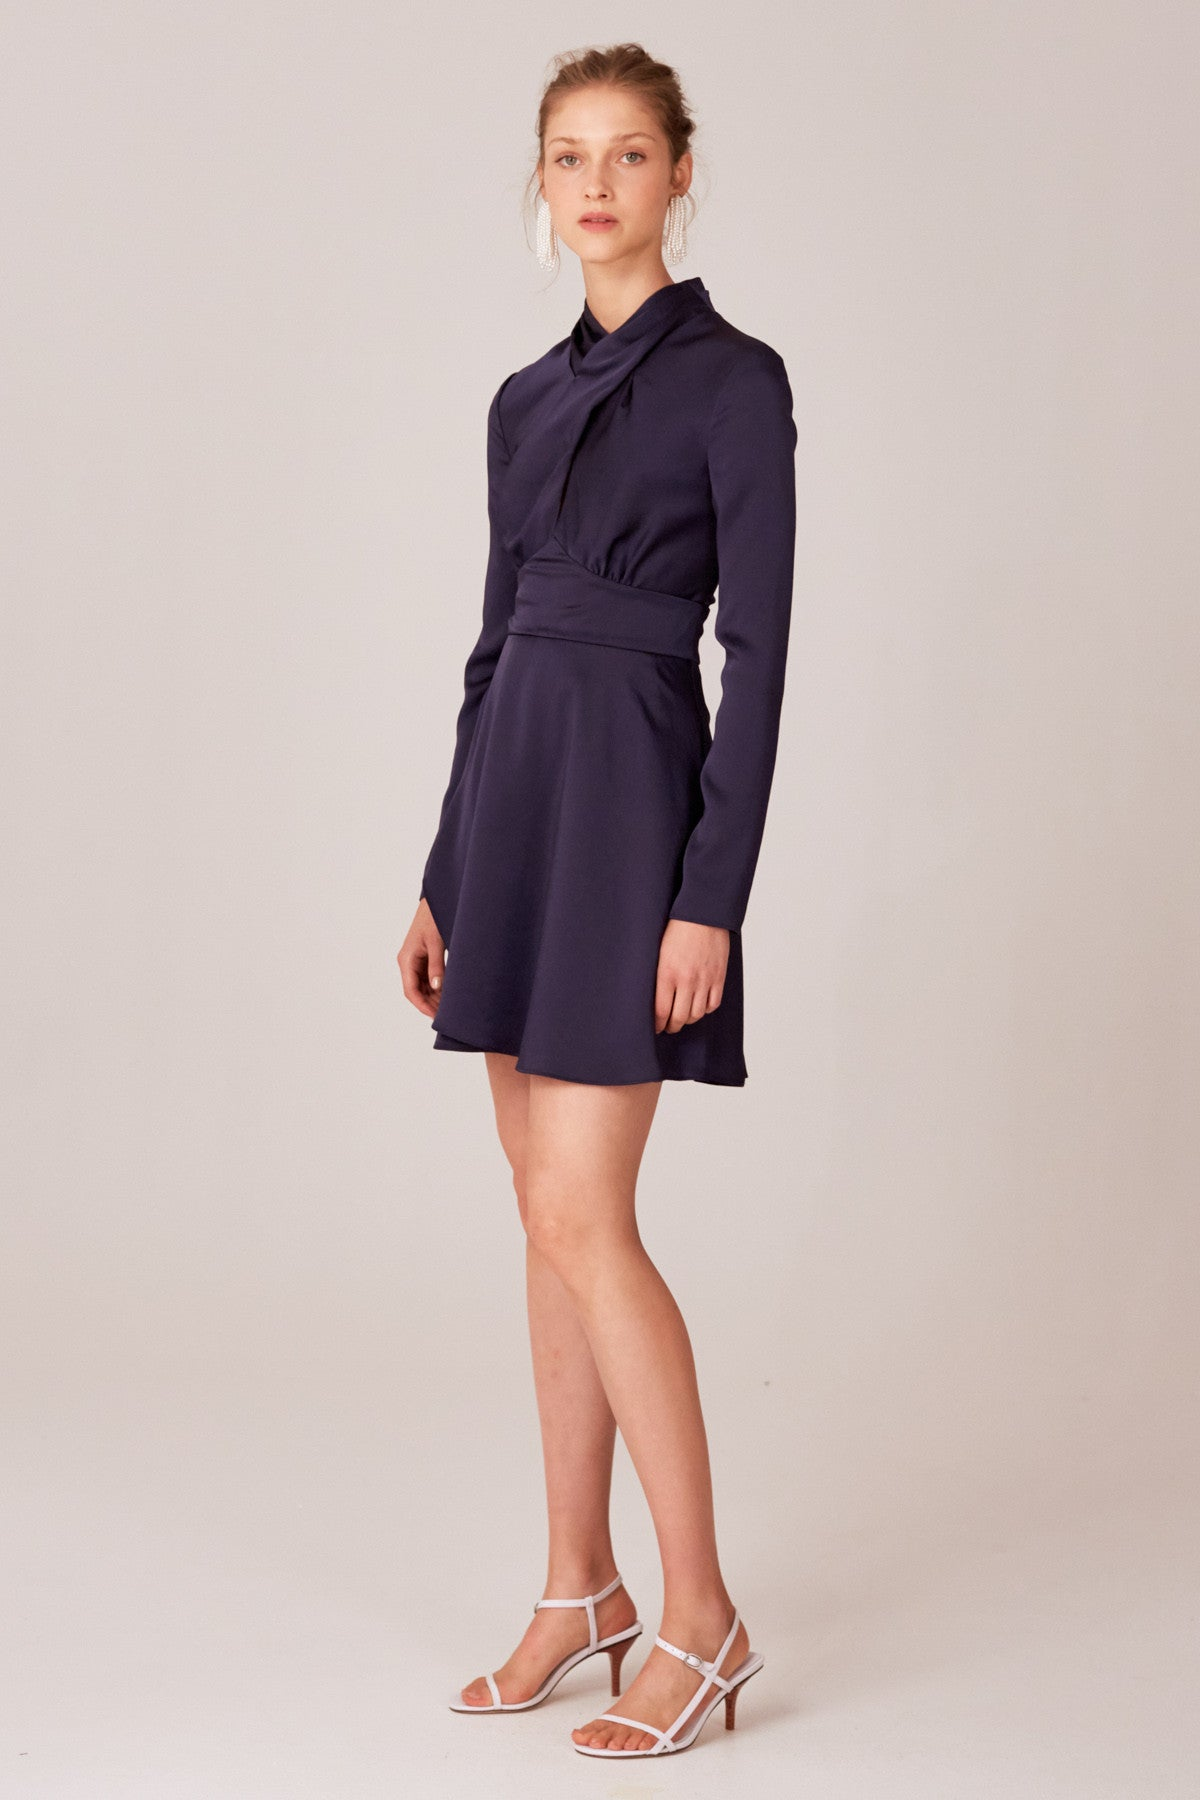 LATE THOUGHTS MINI DRESS navy